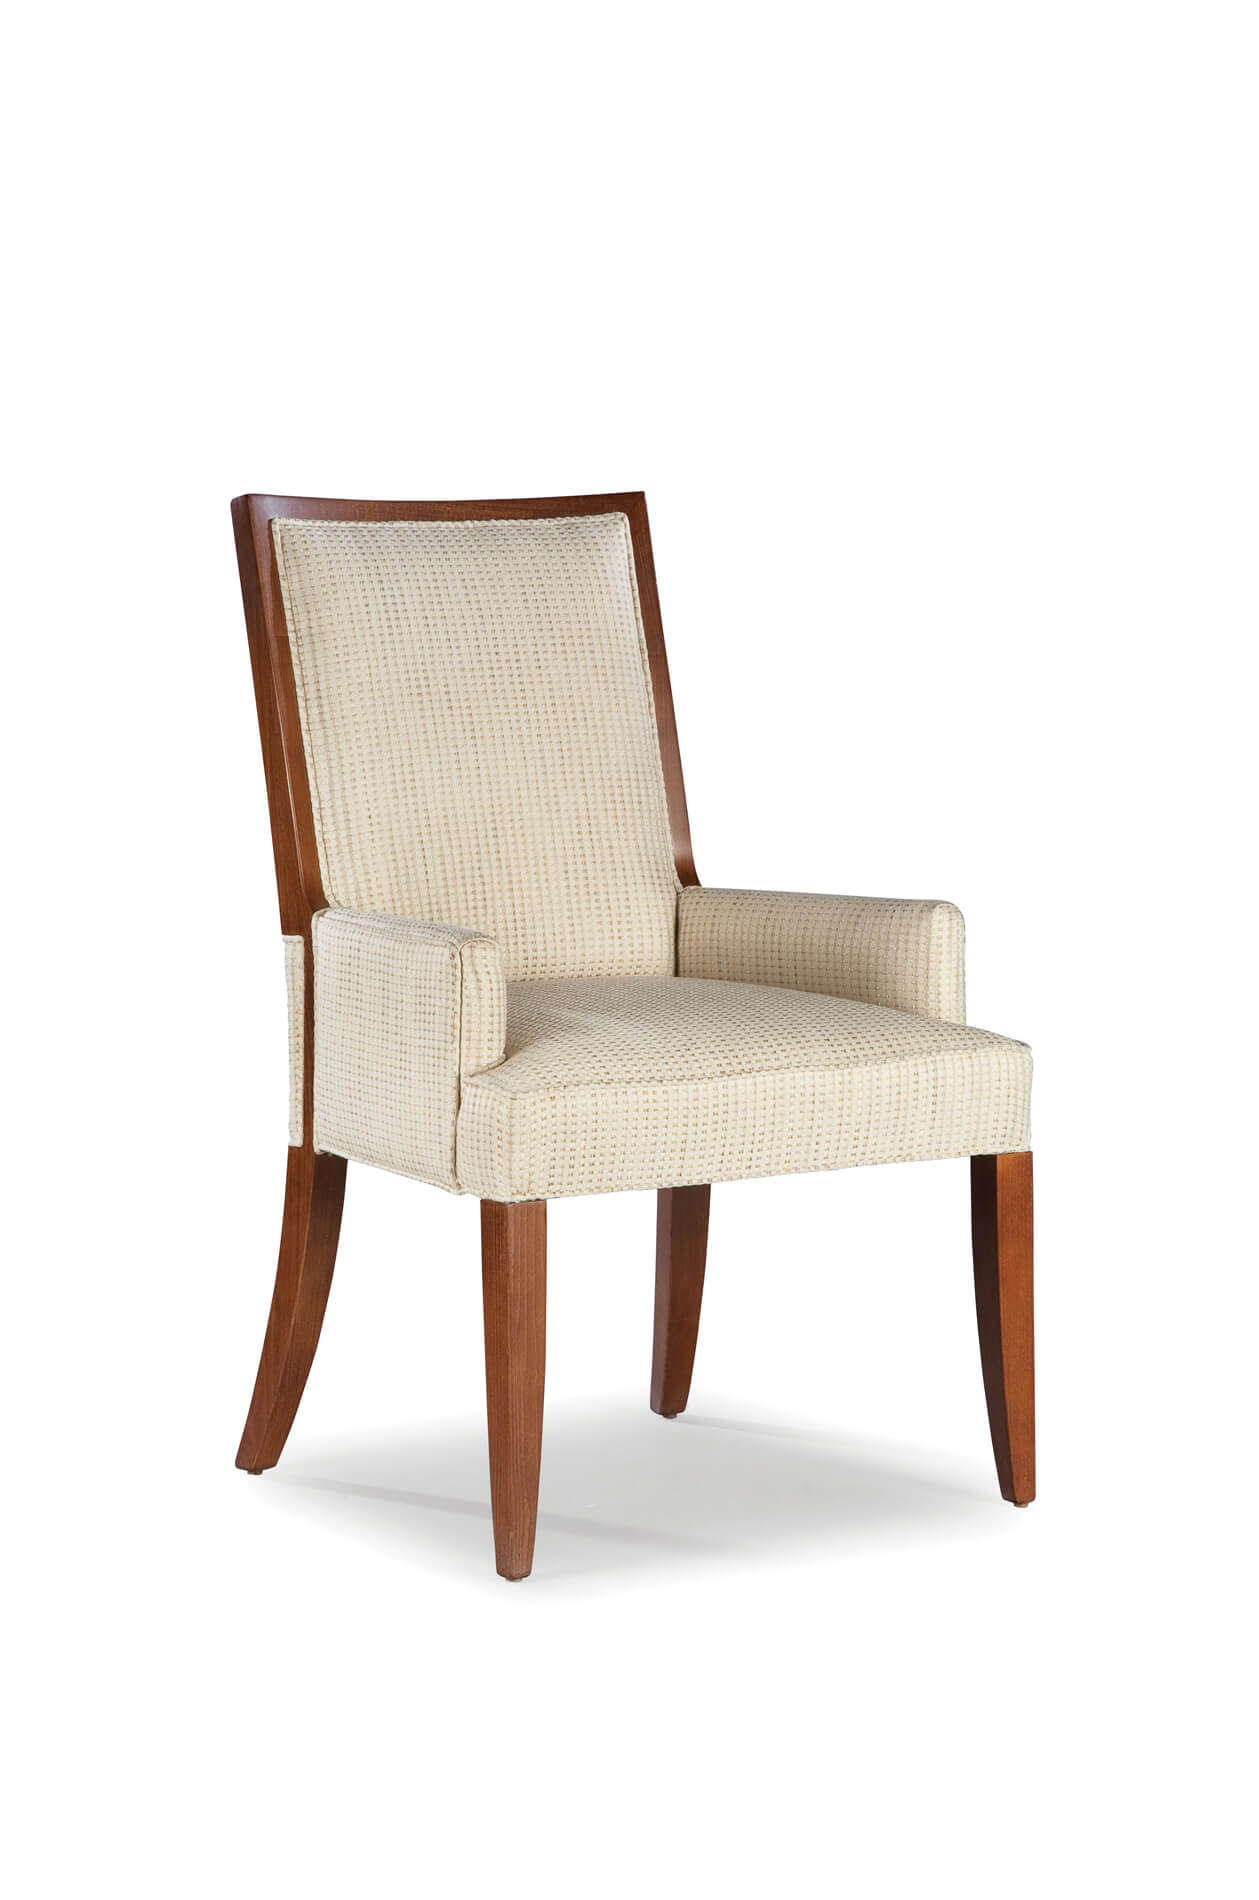 Fairfield's Harvey Upholstered Dining Arm Chair